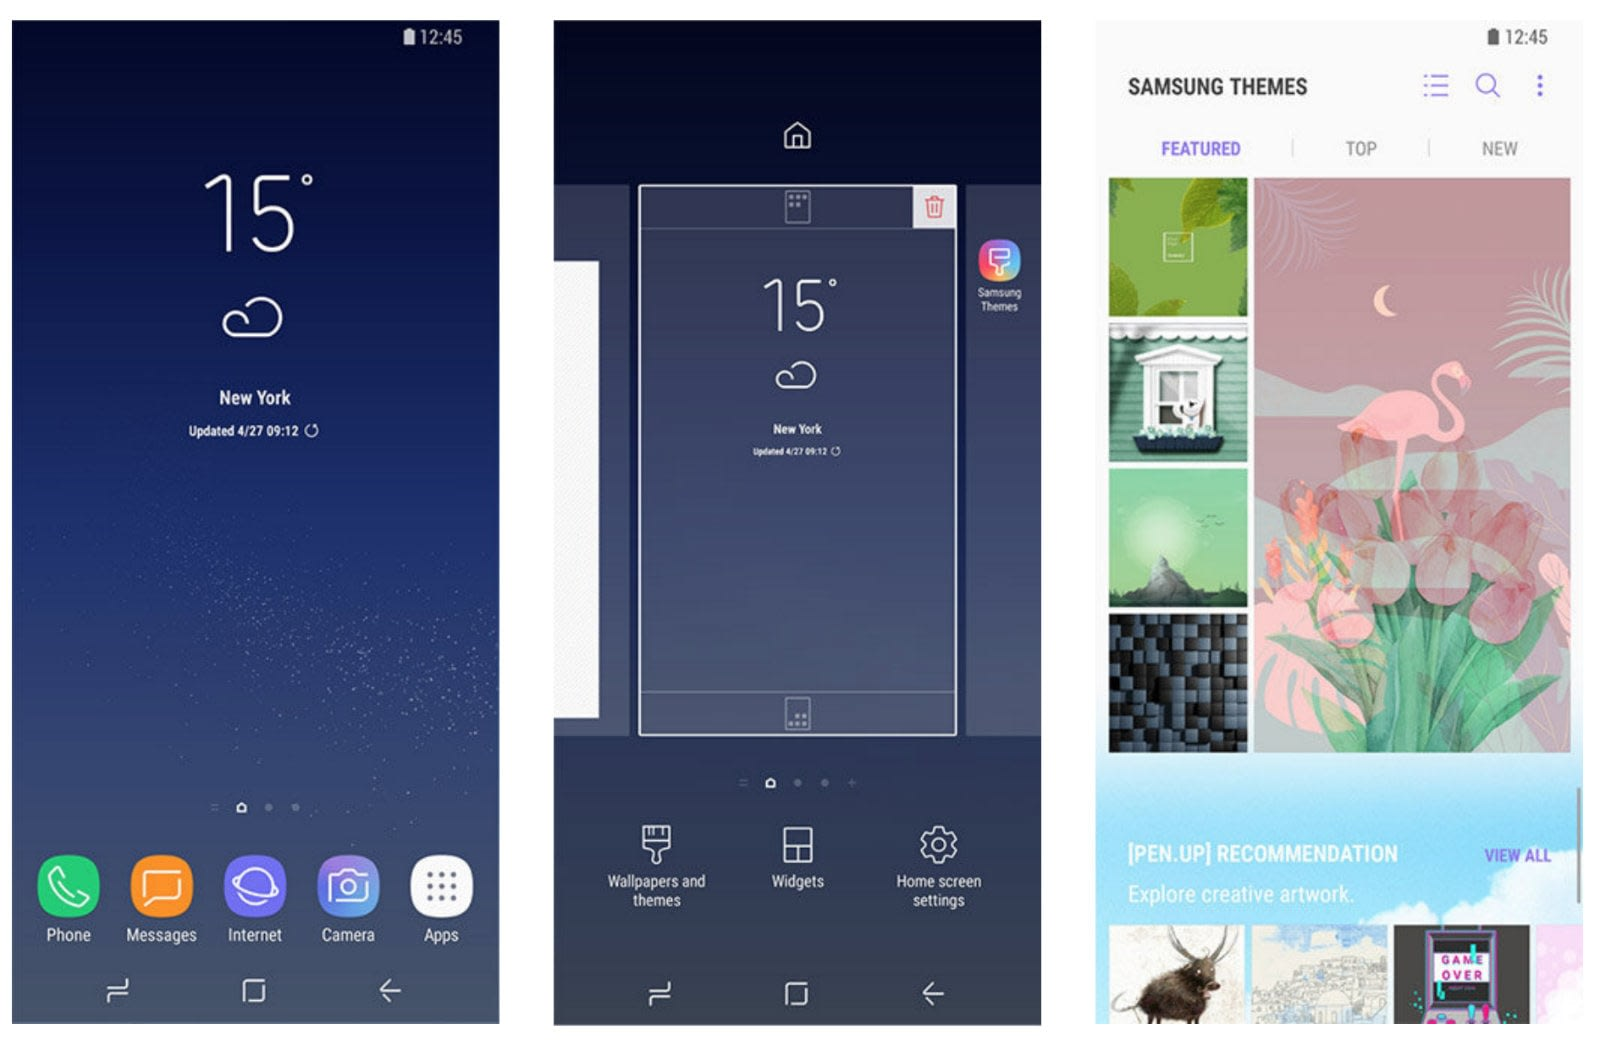 Samsung's free Galaxy phone themes won't be free anymore